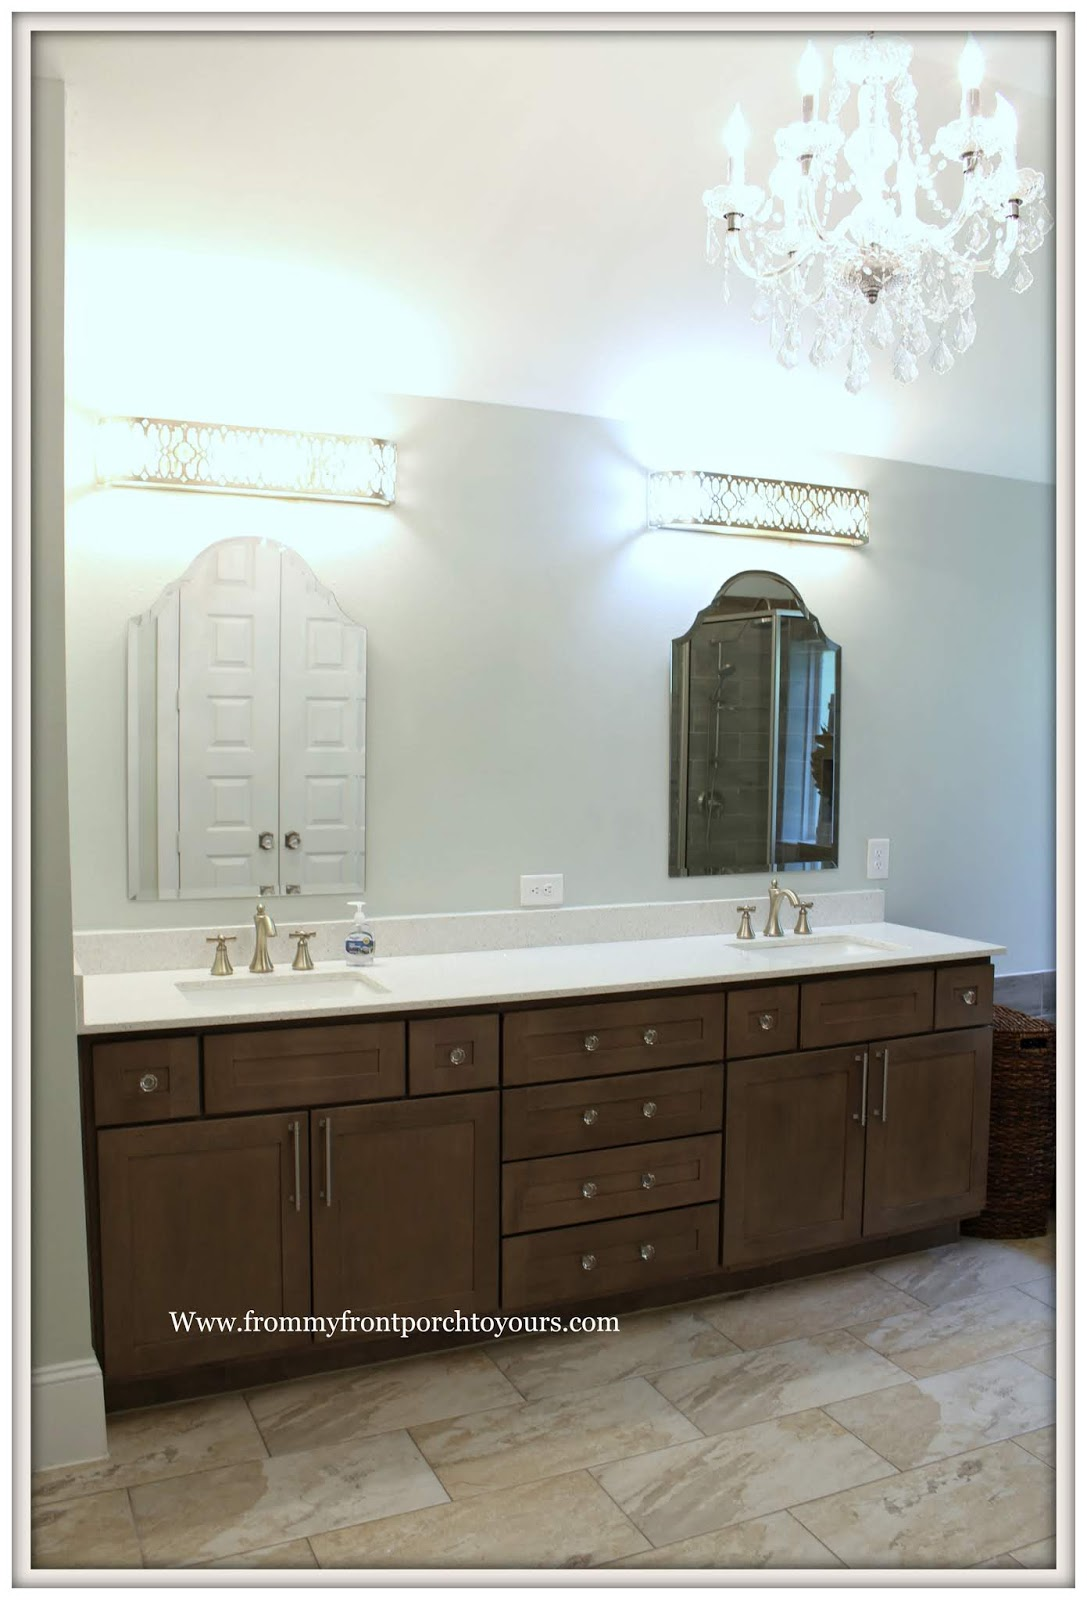 From My Front Porch To Yours: Master Bathroom Makeover Update ...